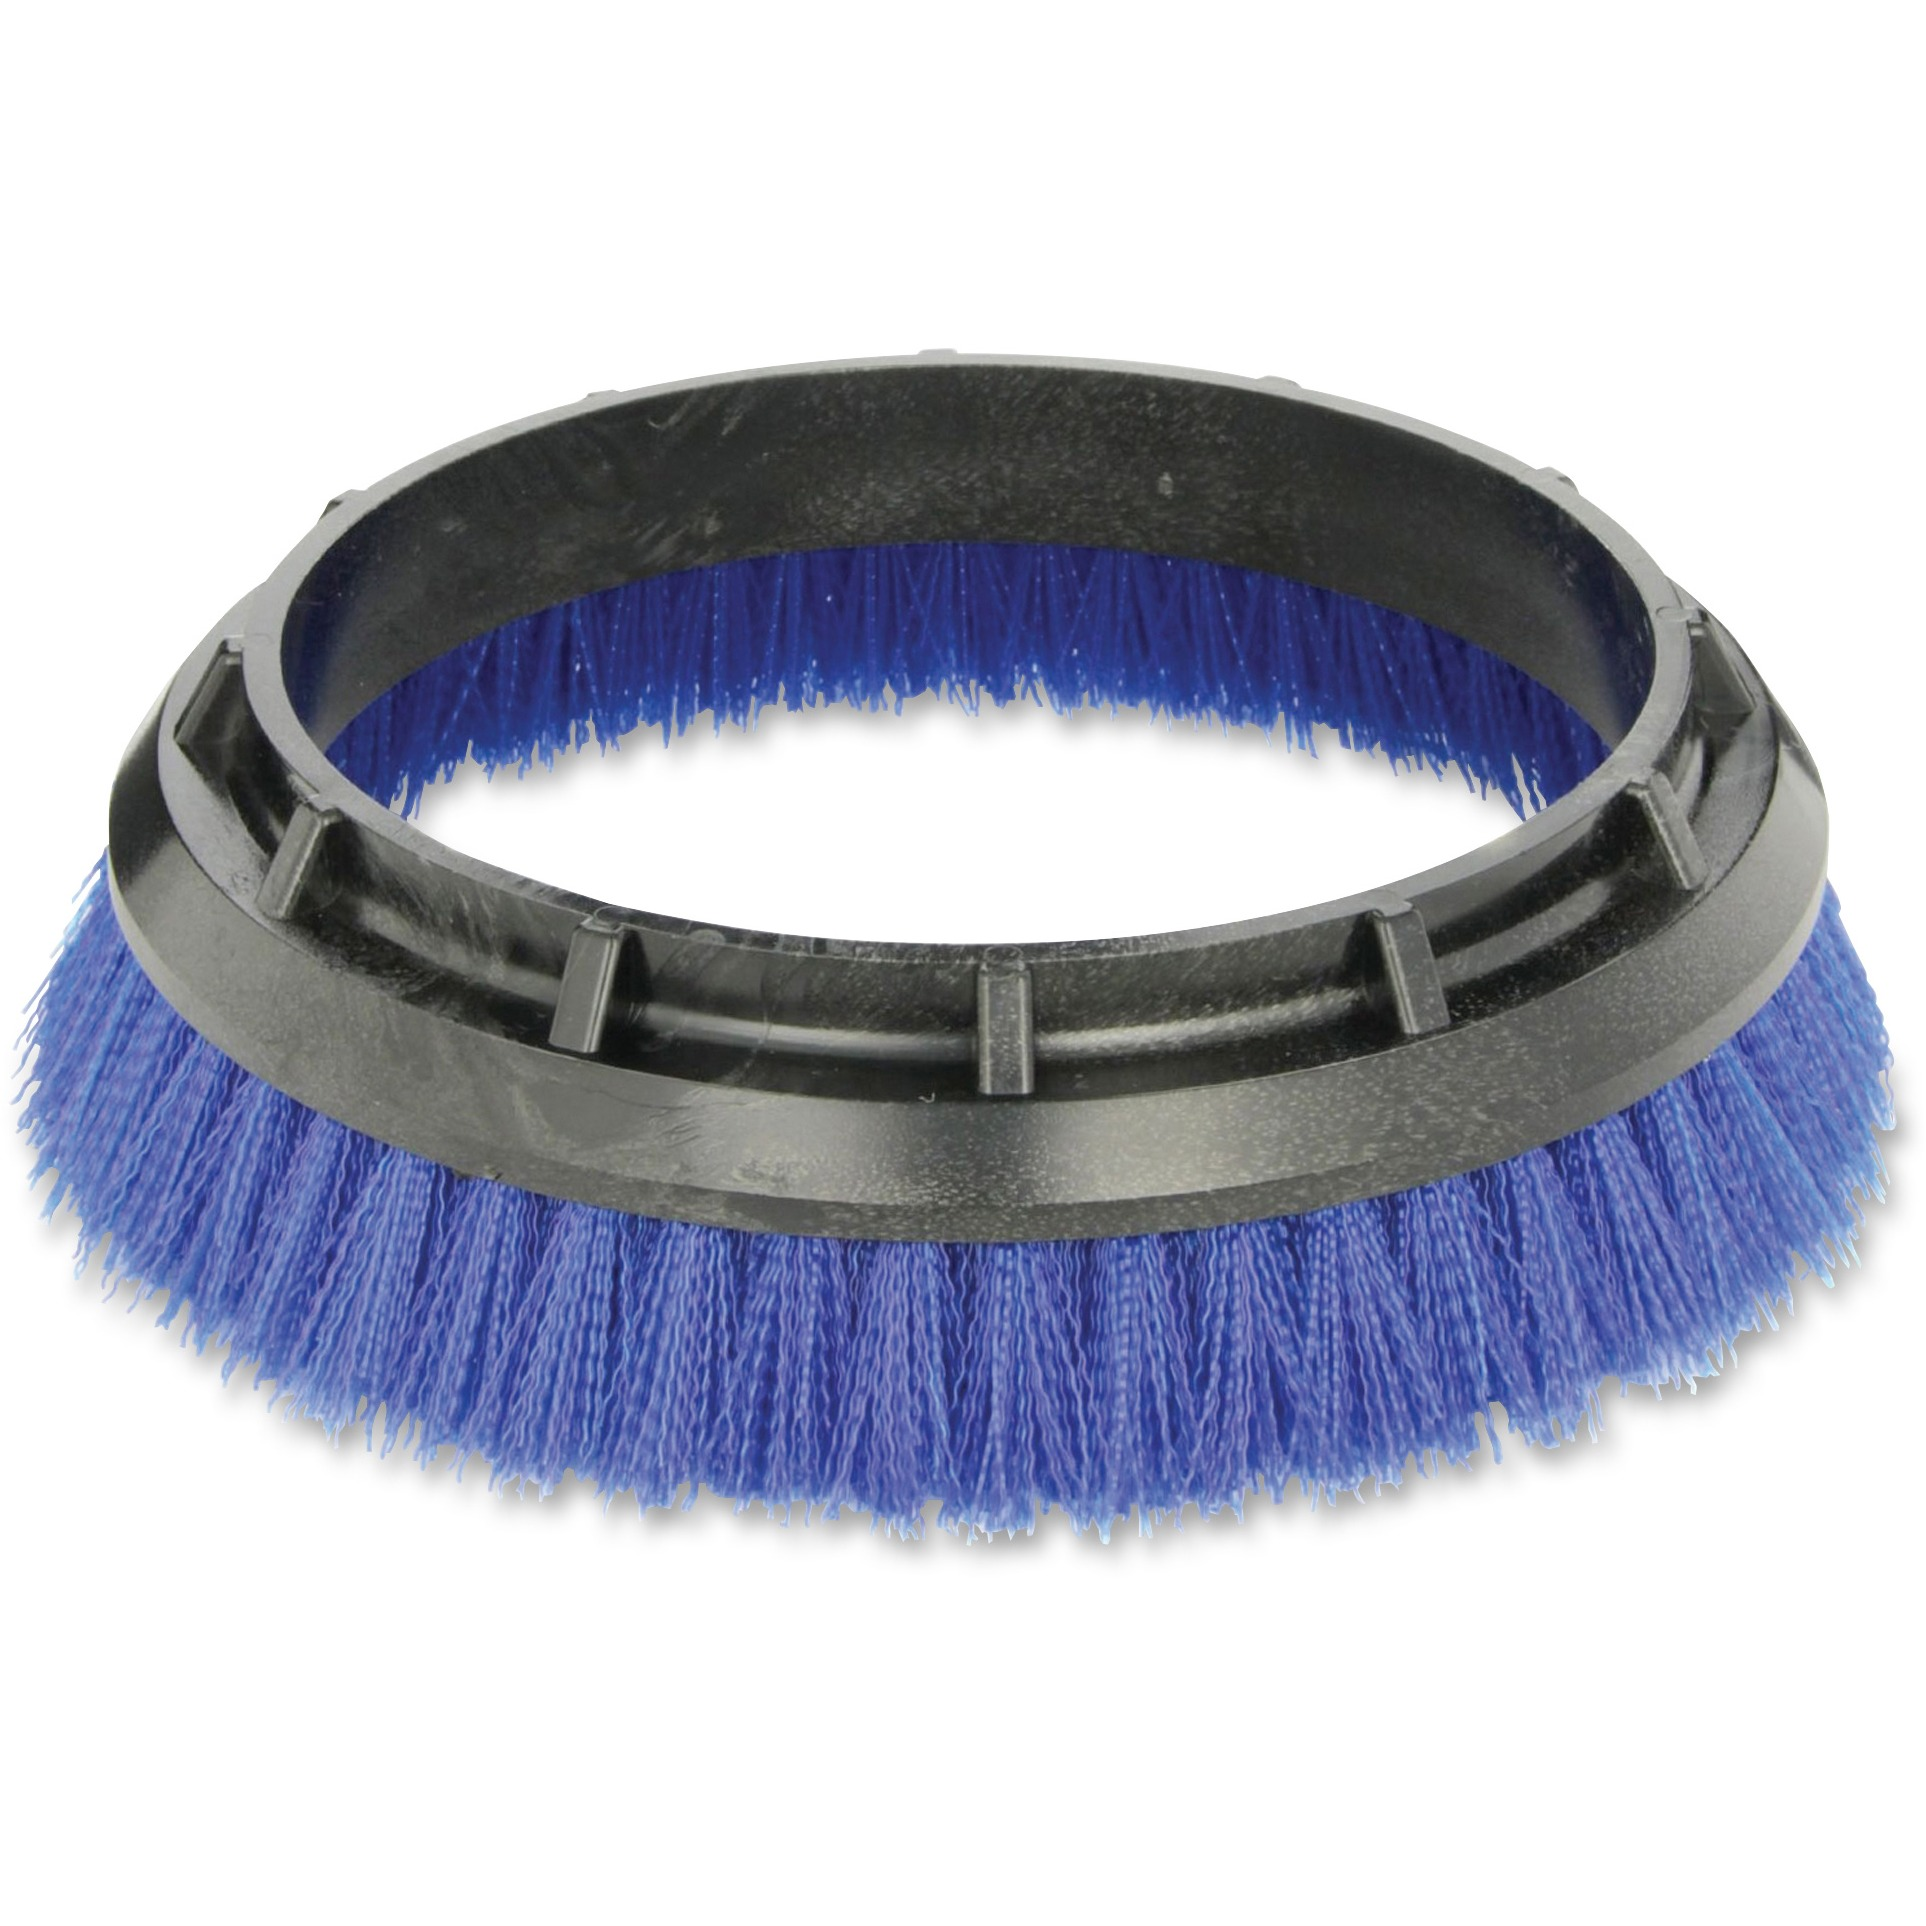 Oreck Orbiter Floor Machine Blue Scrub Brush, Blue, 1 Each (Quantity)